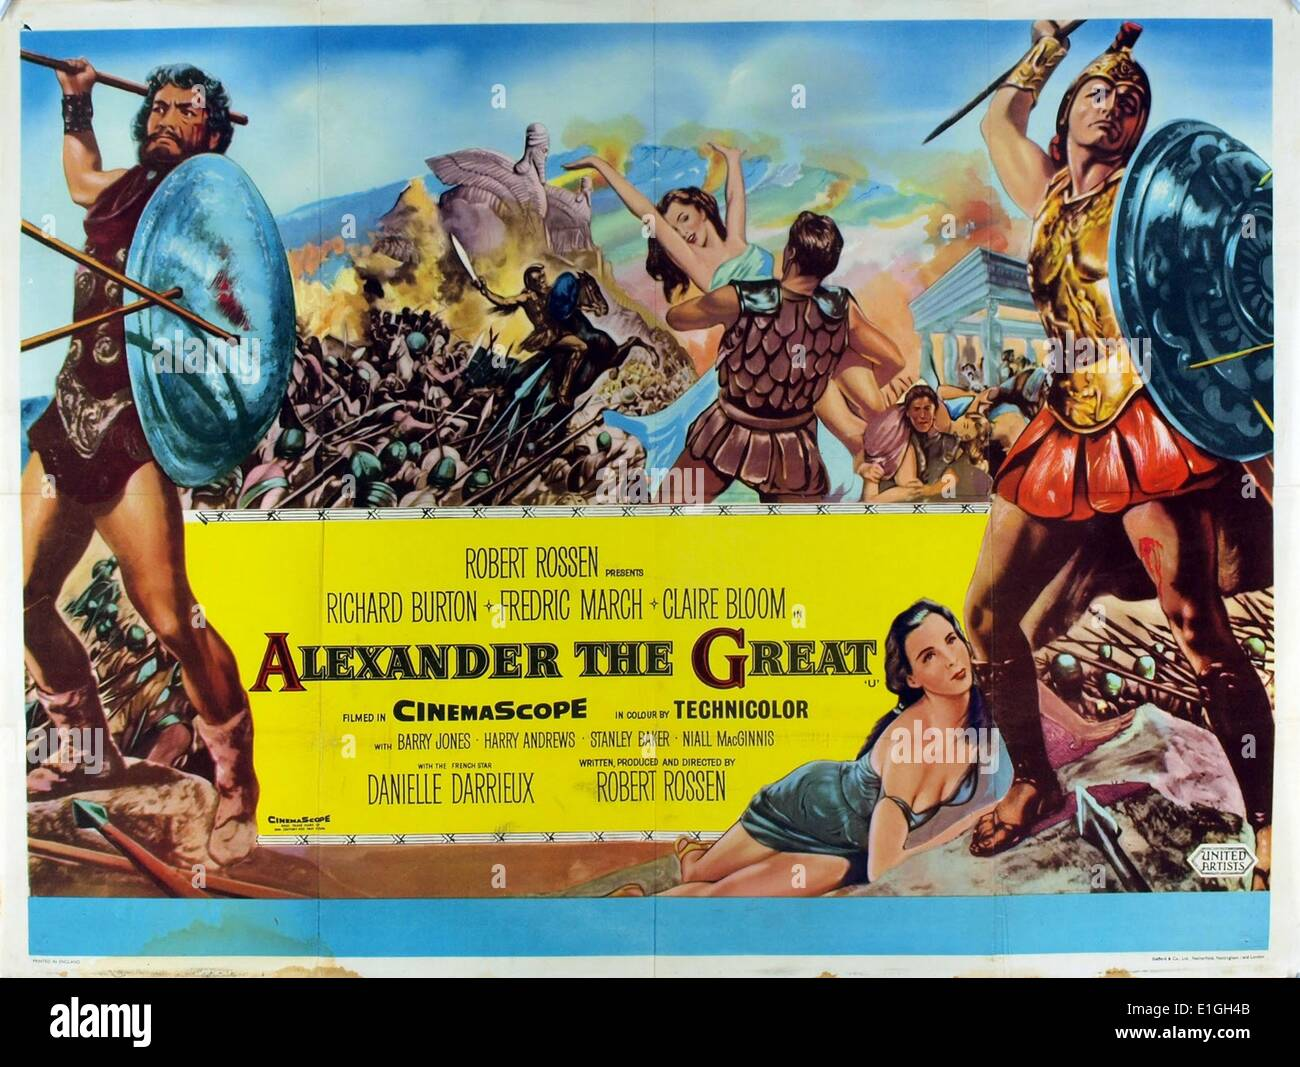 'Alexander the Great' a 1956 American epic film about the life of Macedonian general and King Alexander - Stock Image